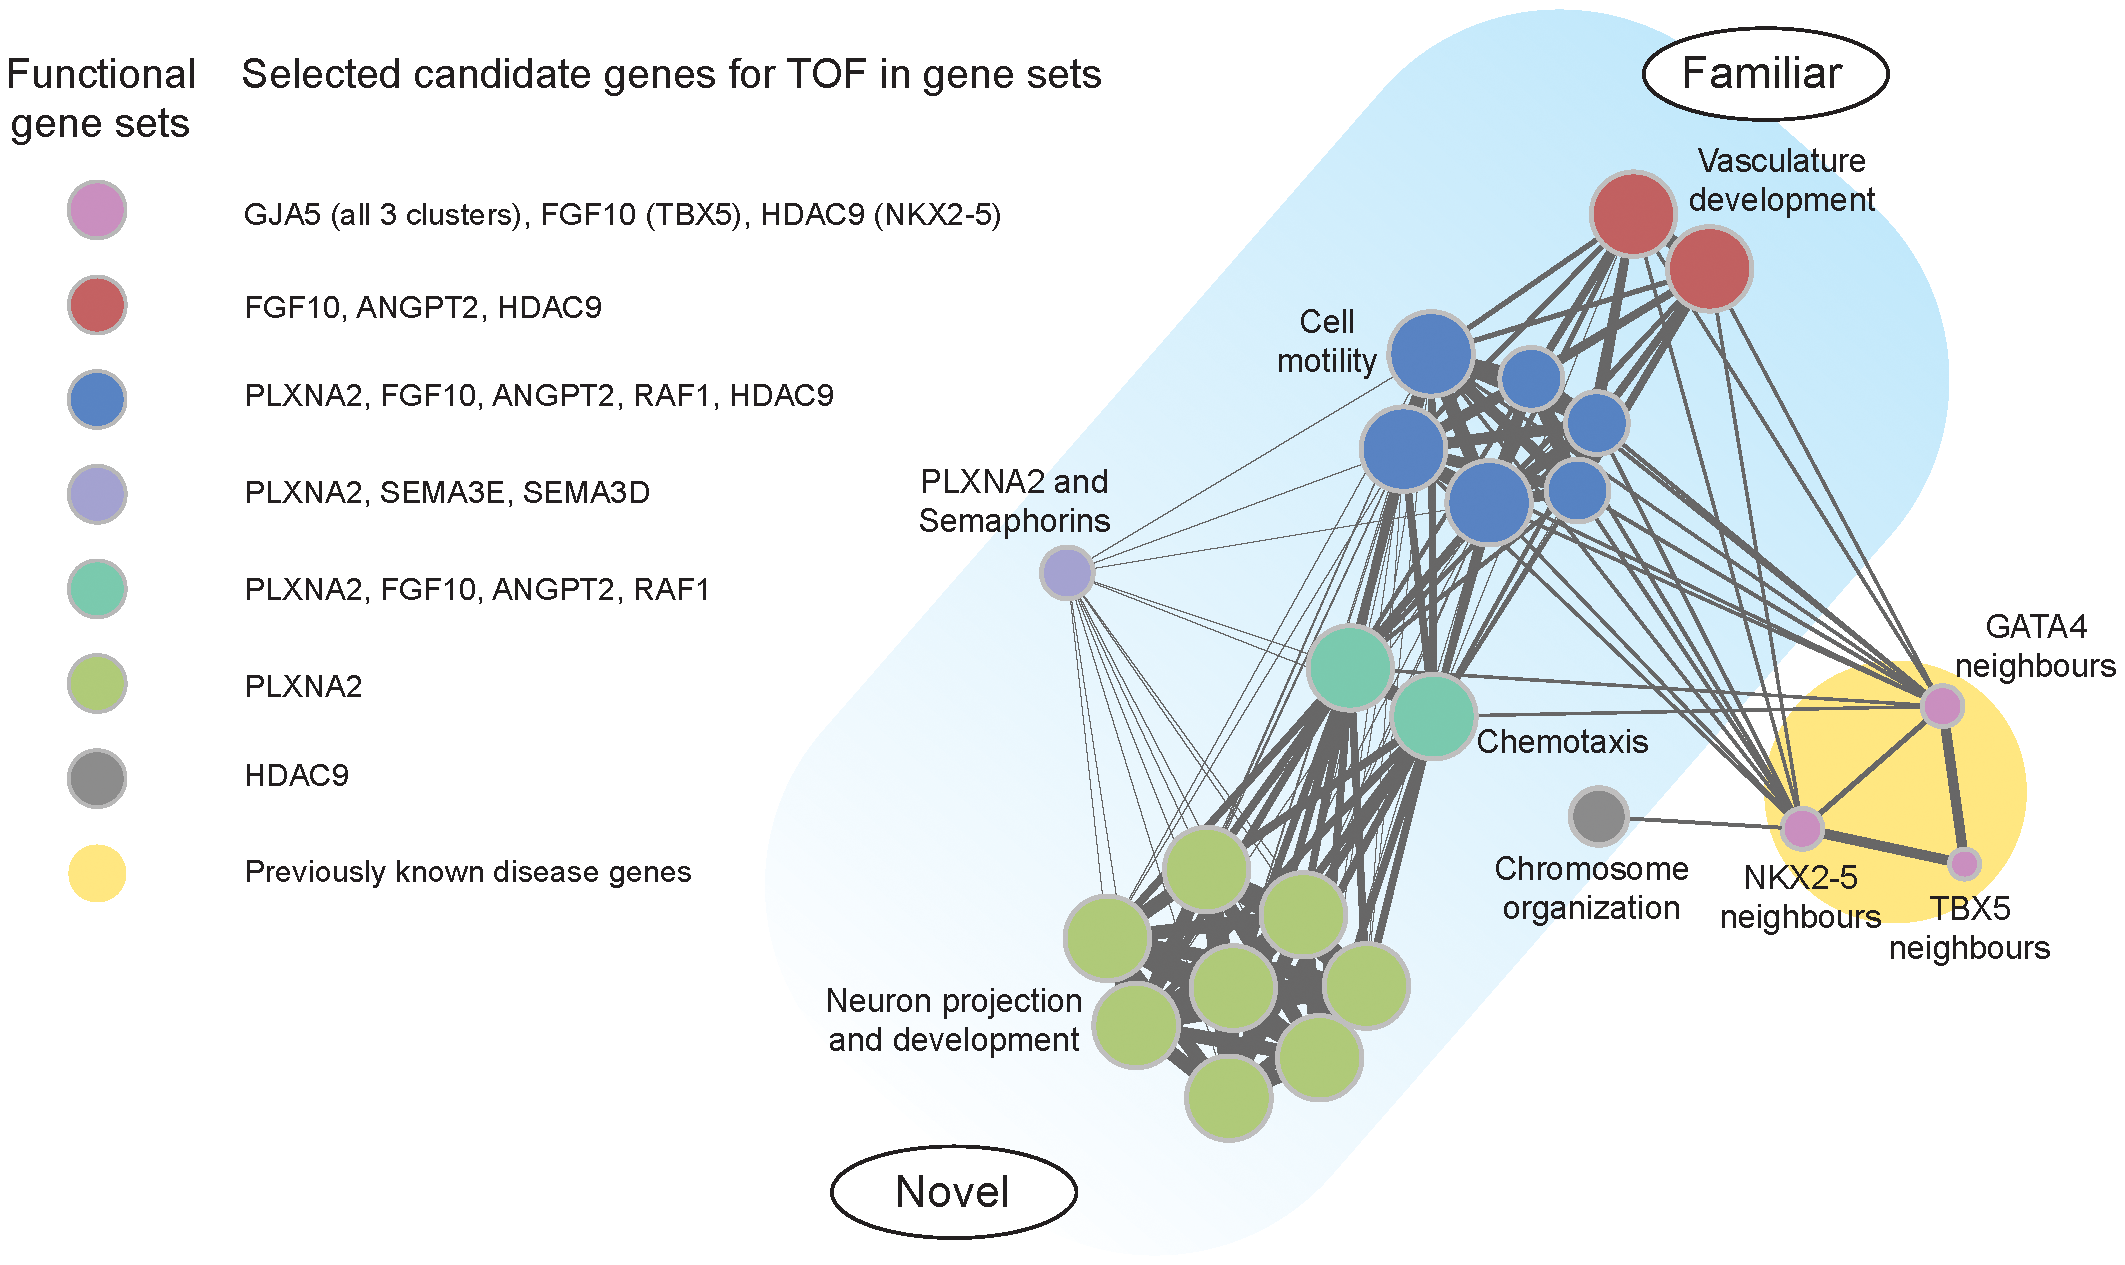 Functional clusters of candidate genes for tetralogy of Fallot.